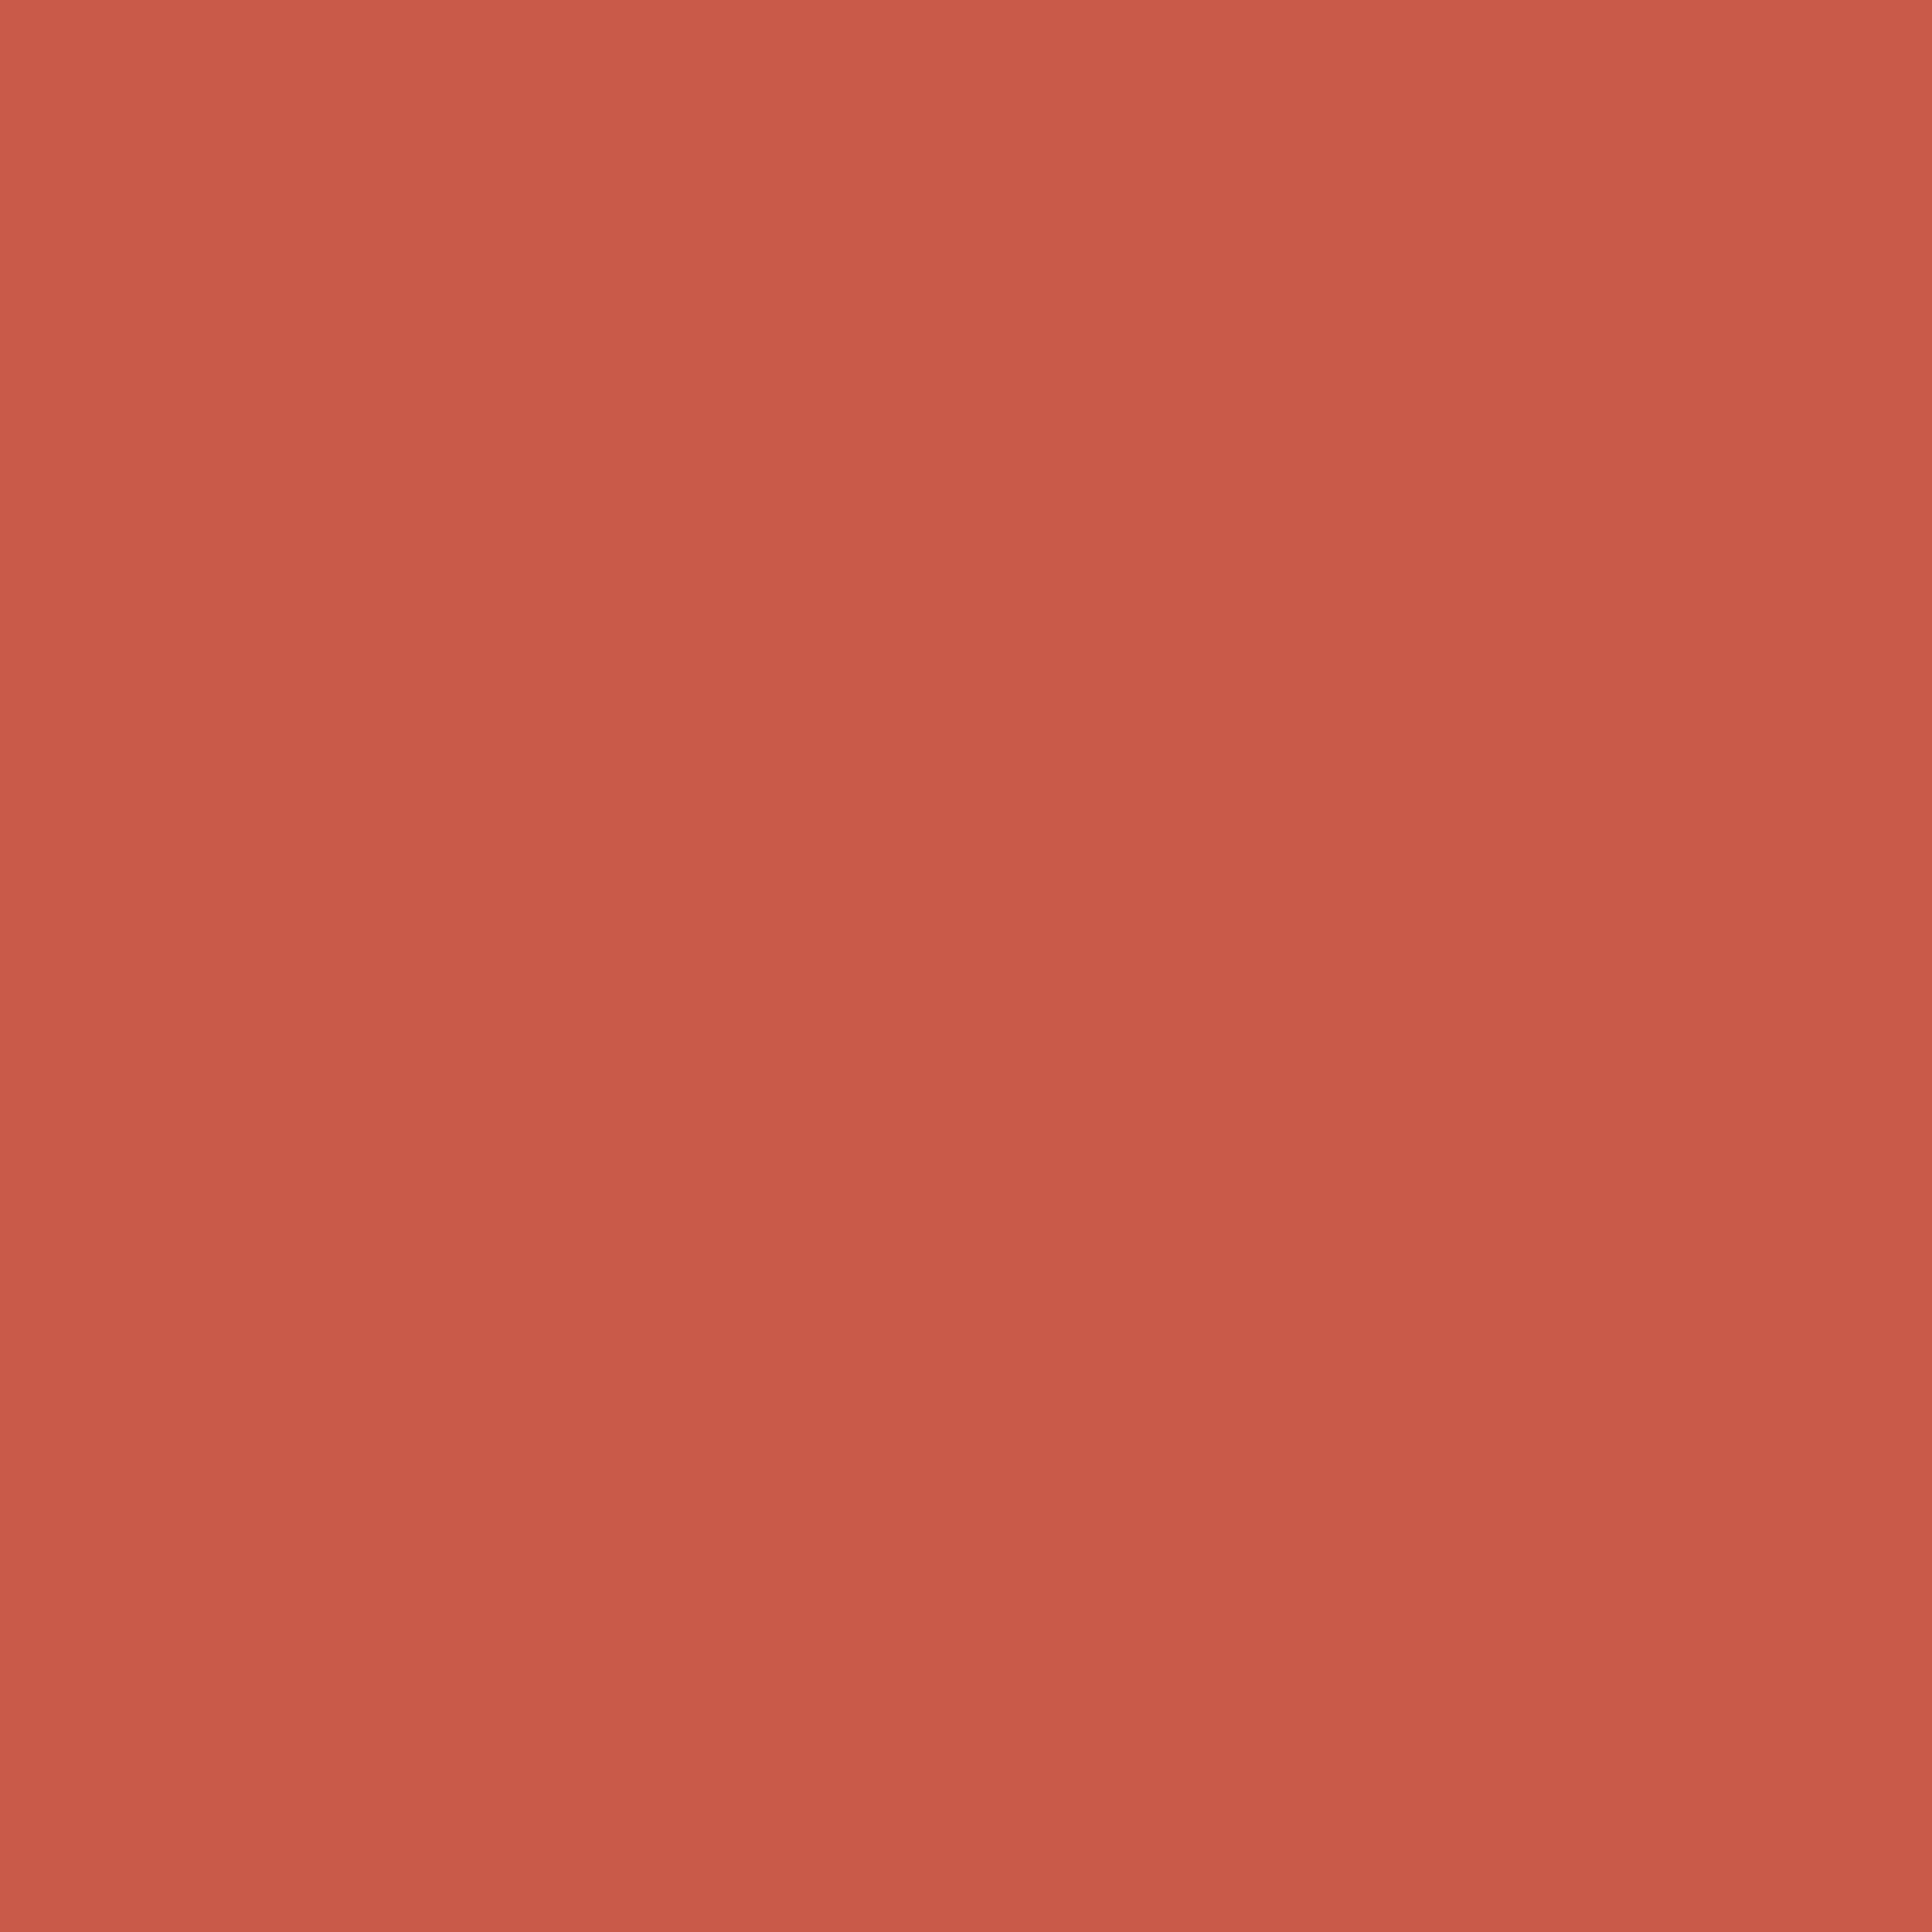 3600x3600 Cedar Chest Solid Color Background